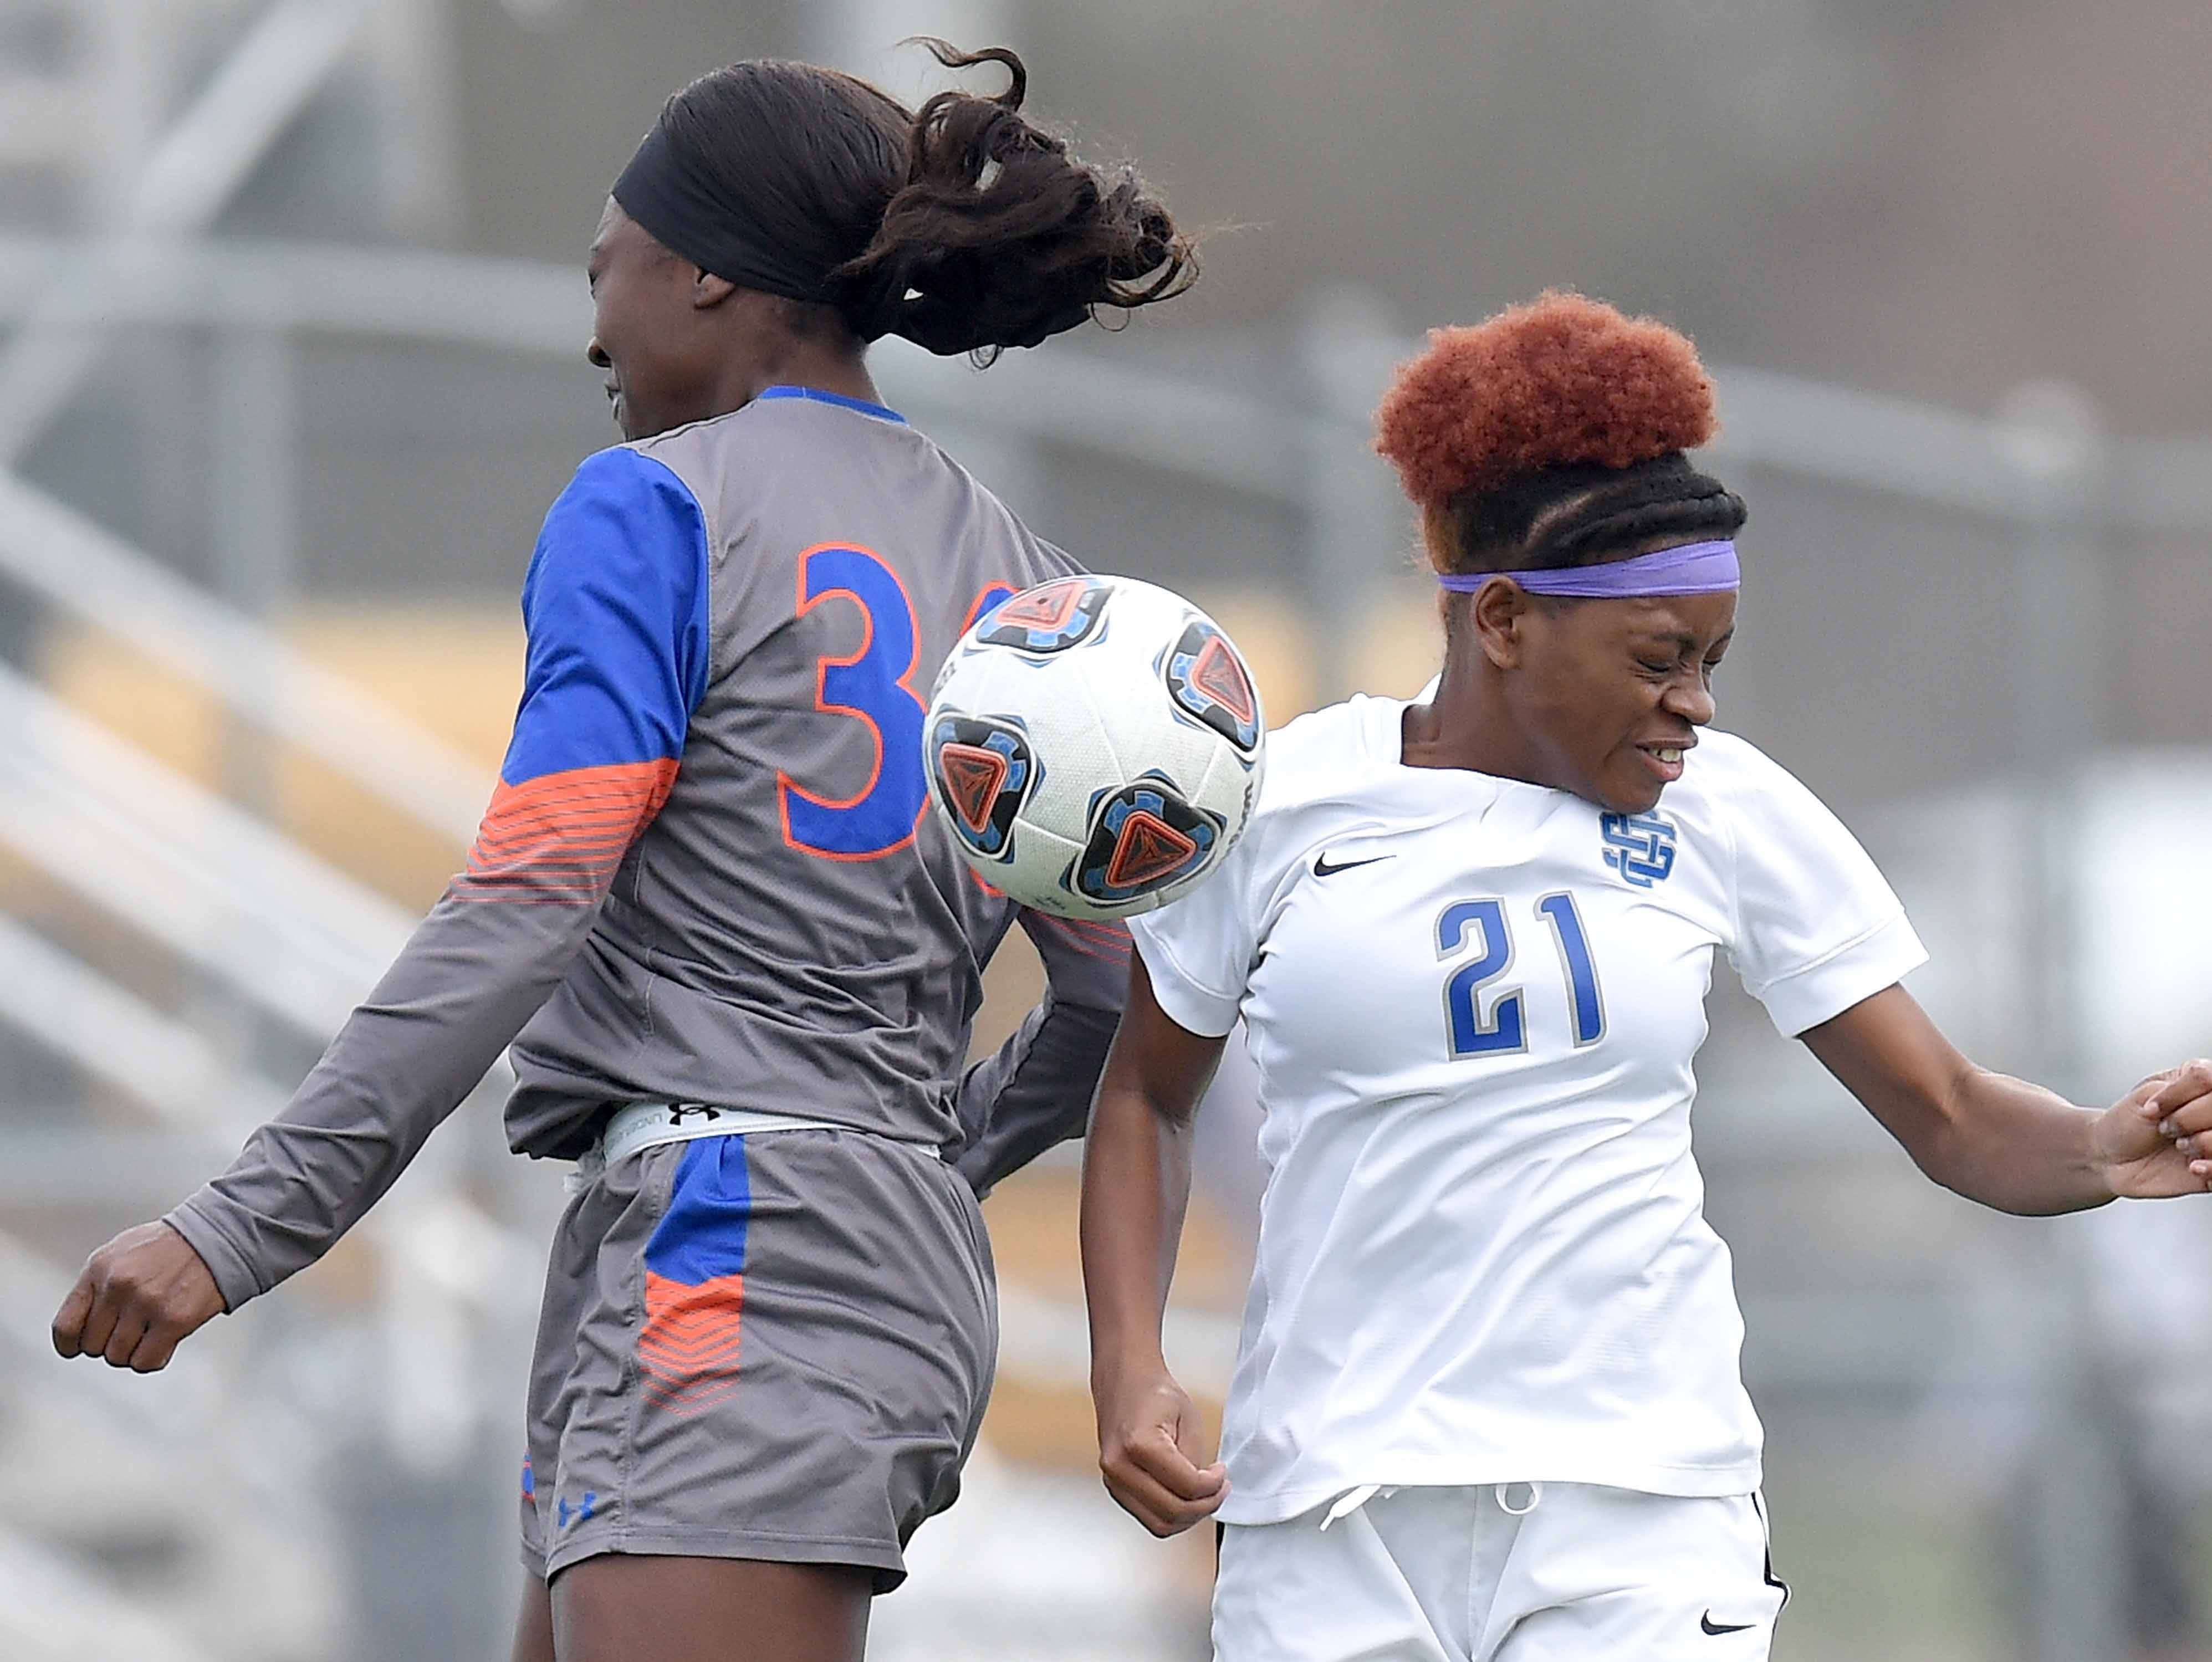 Madison Central's Cariel Ellis (30) and Ocean Springs' Loren Winters (21) go up for a header in the Class 6A state championship in the MHSAA BlueCross Blue Shield of Mississippi Soccer Classic on Saturday, February 9, 2019, at Ridgeland High School in Ridgeland, Miss.